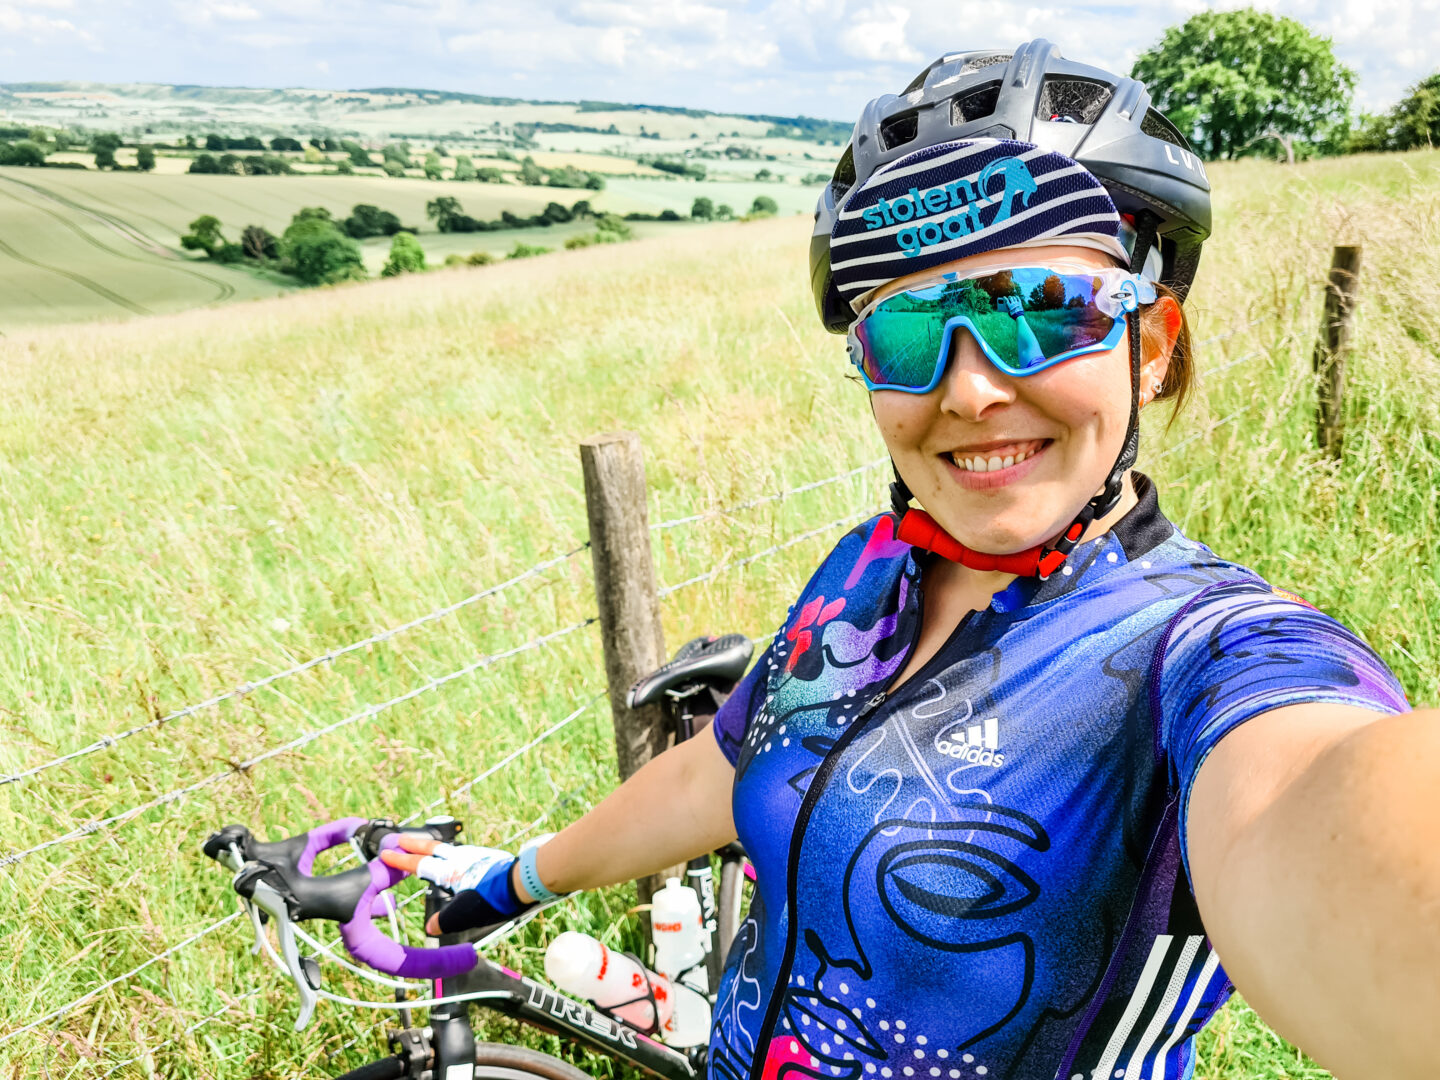 Woman wearing cycling kit smiling at the camera with her hand on a road bike, with a countryside view in the background